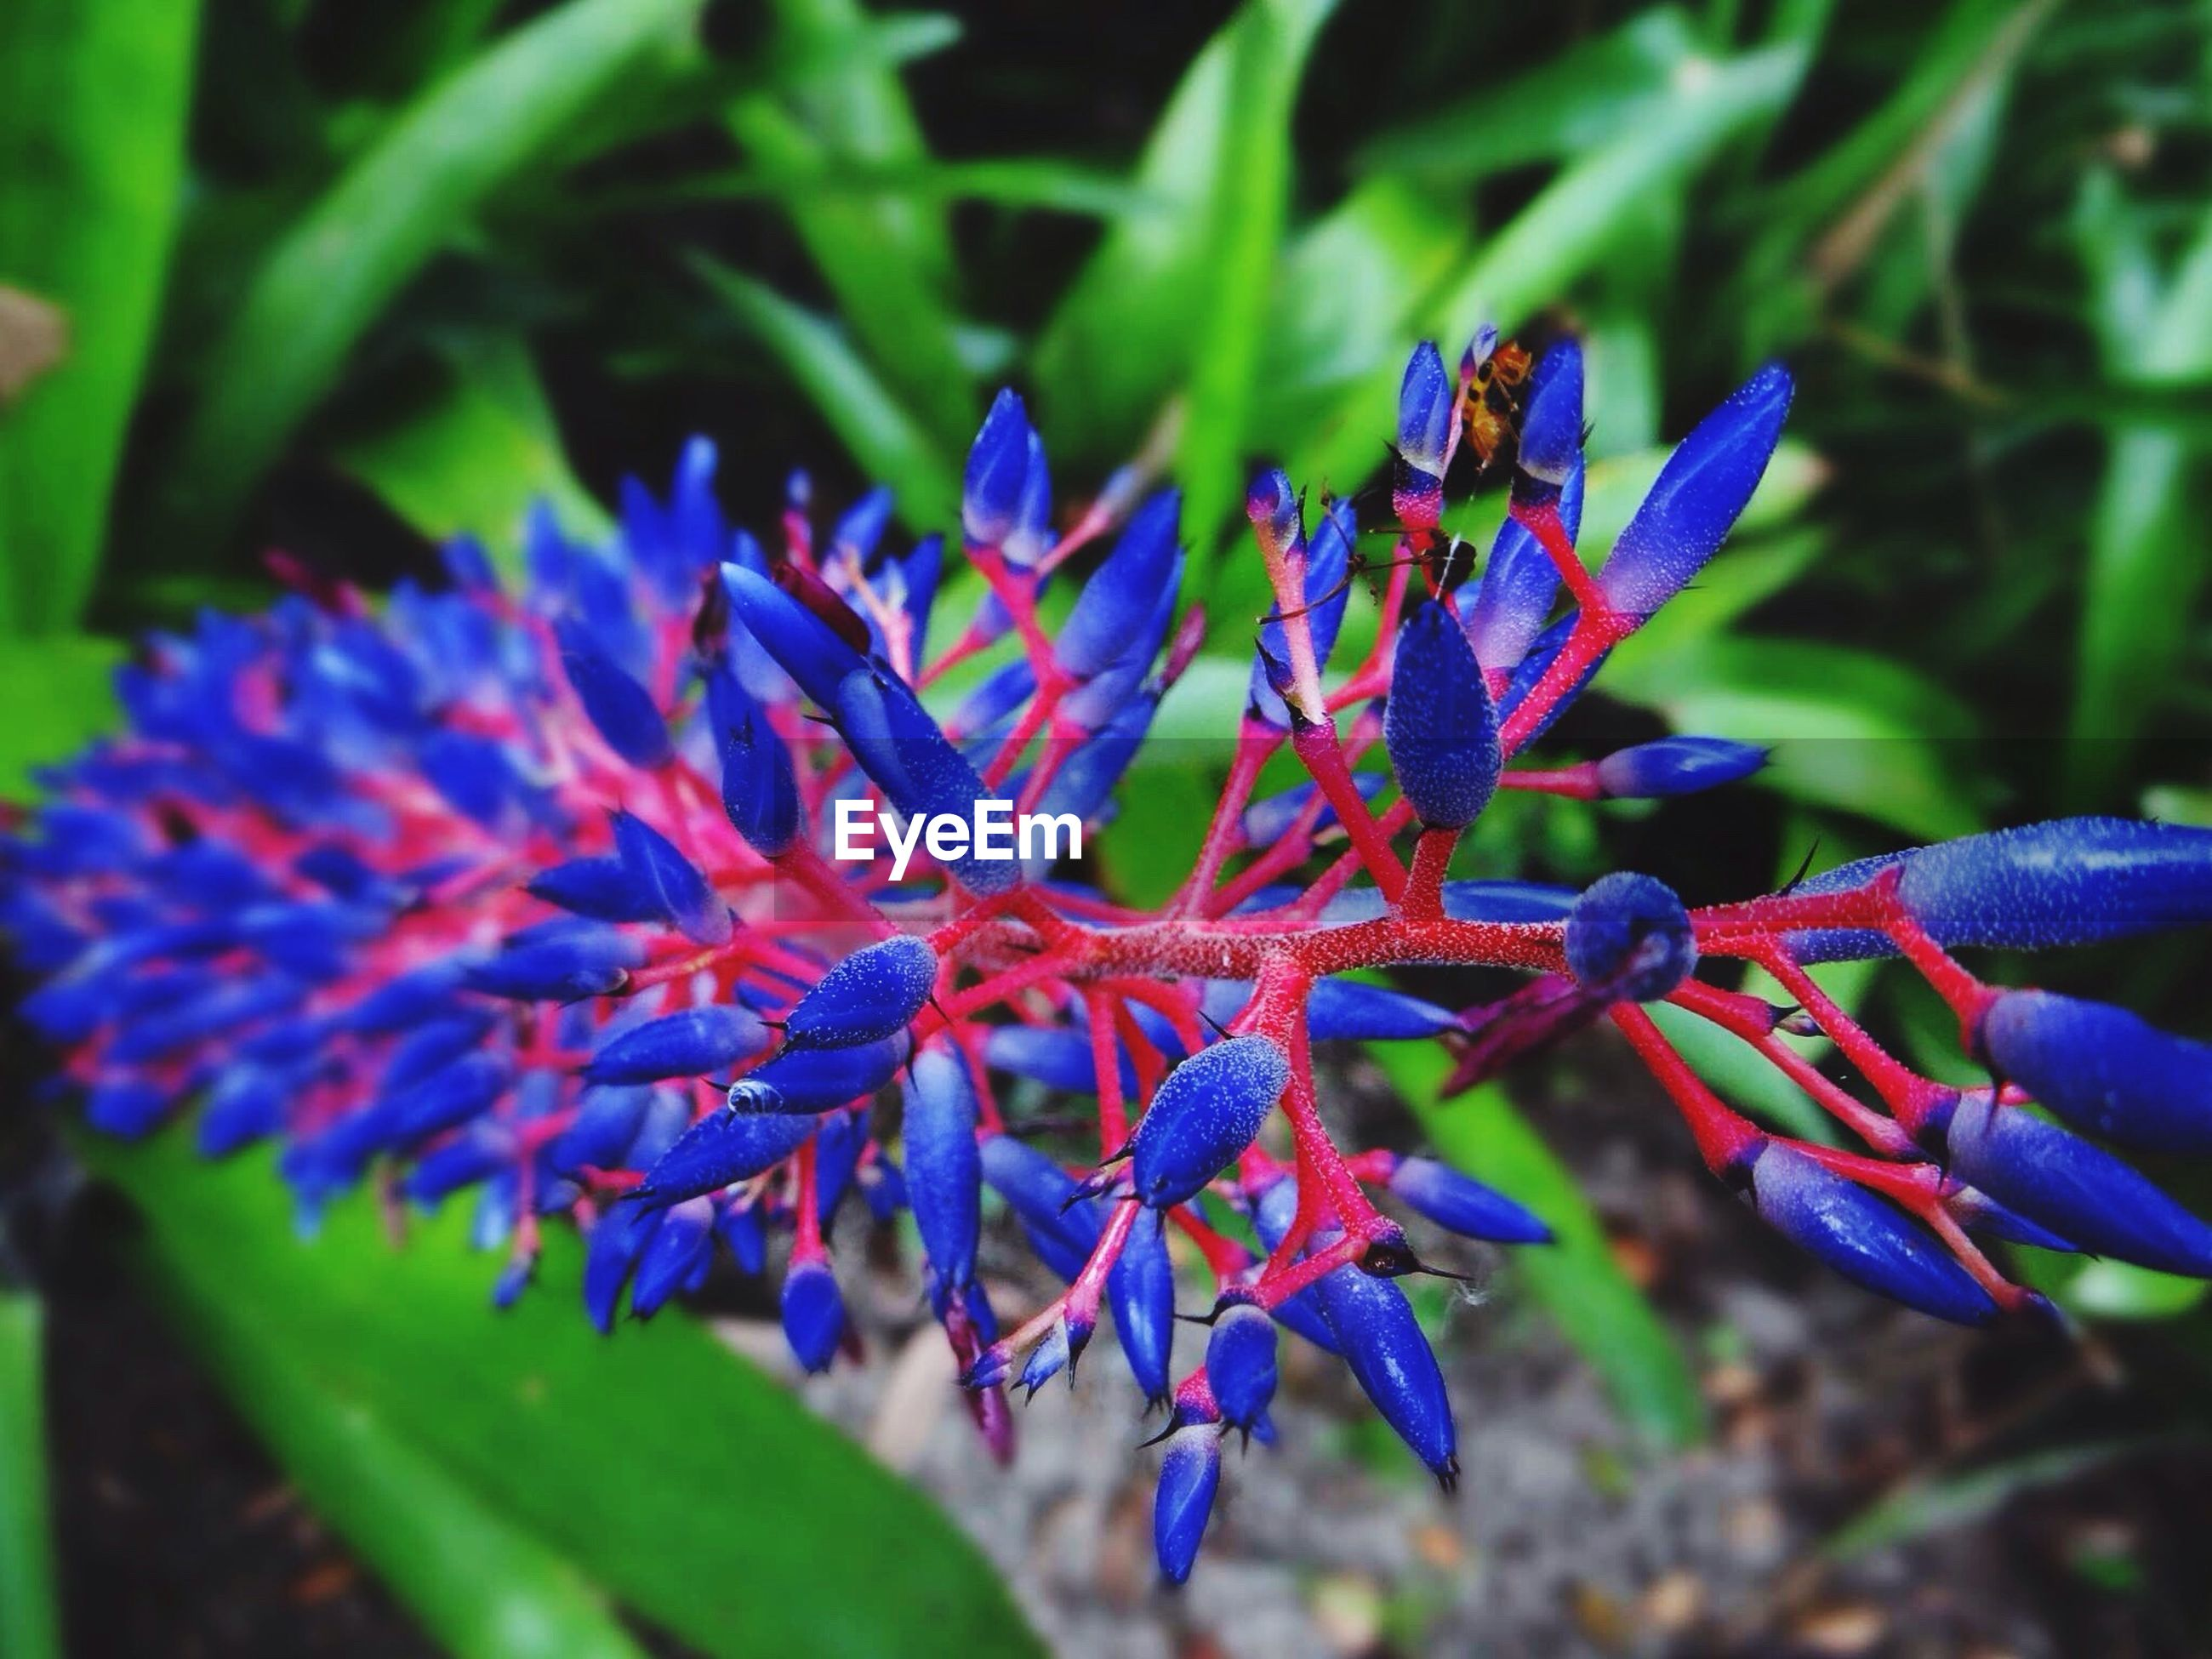 flower, purple, petal, freshness, growth, fragility, close-up, focus on foreground, beauty in nature, flower head, plant, nature, blooming, blue, leaf, selective focus, day, park - man made space, outdoors, in bloom